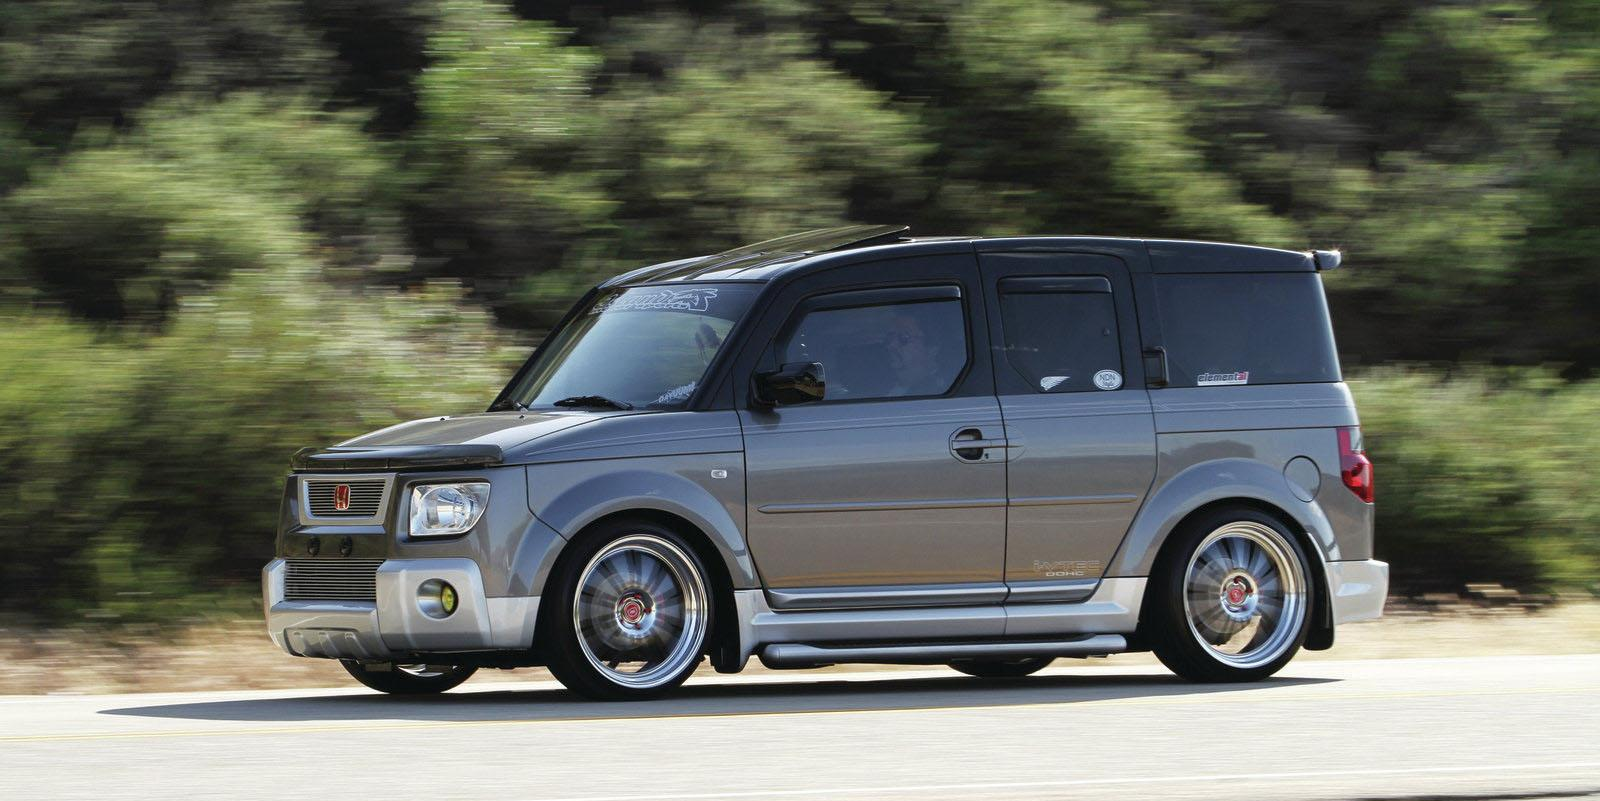 Honda Element - View all Honda Element at CarDomain